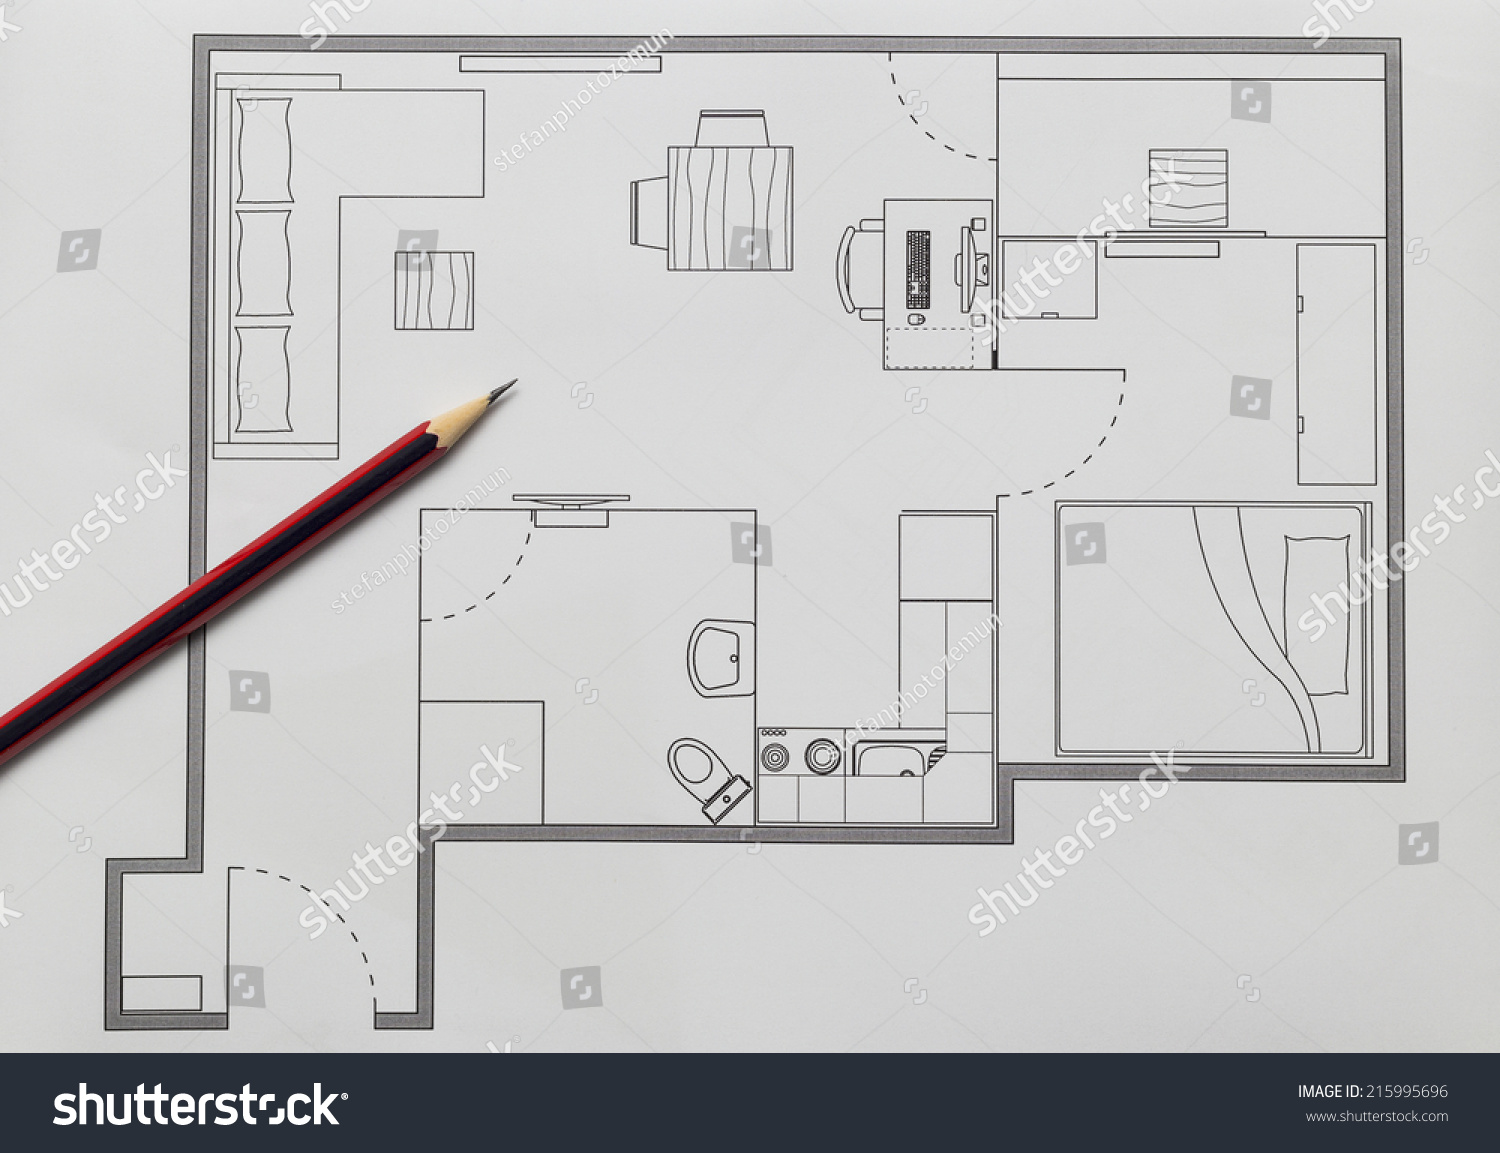 Apartment plan stock photo 215995696 shutterstock for Apartment stock plans